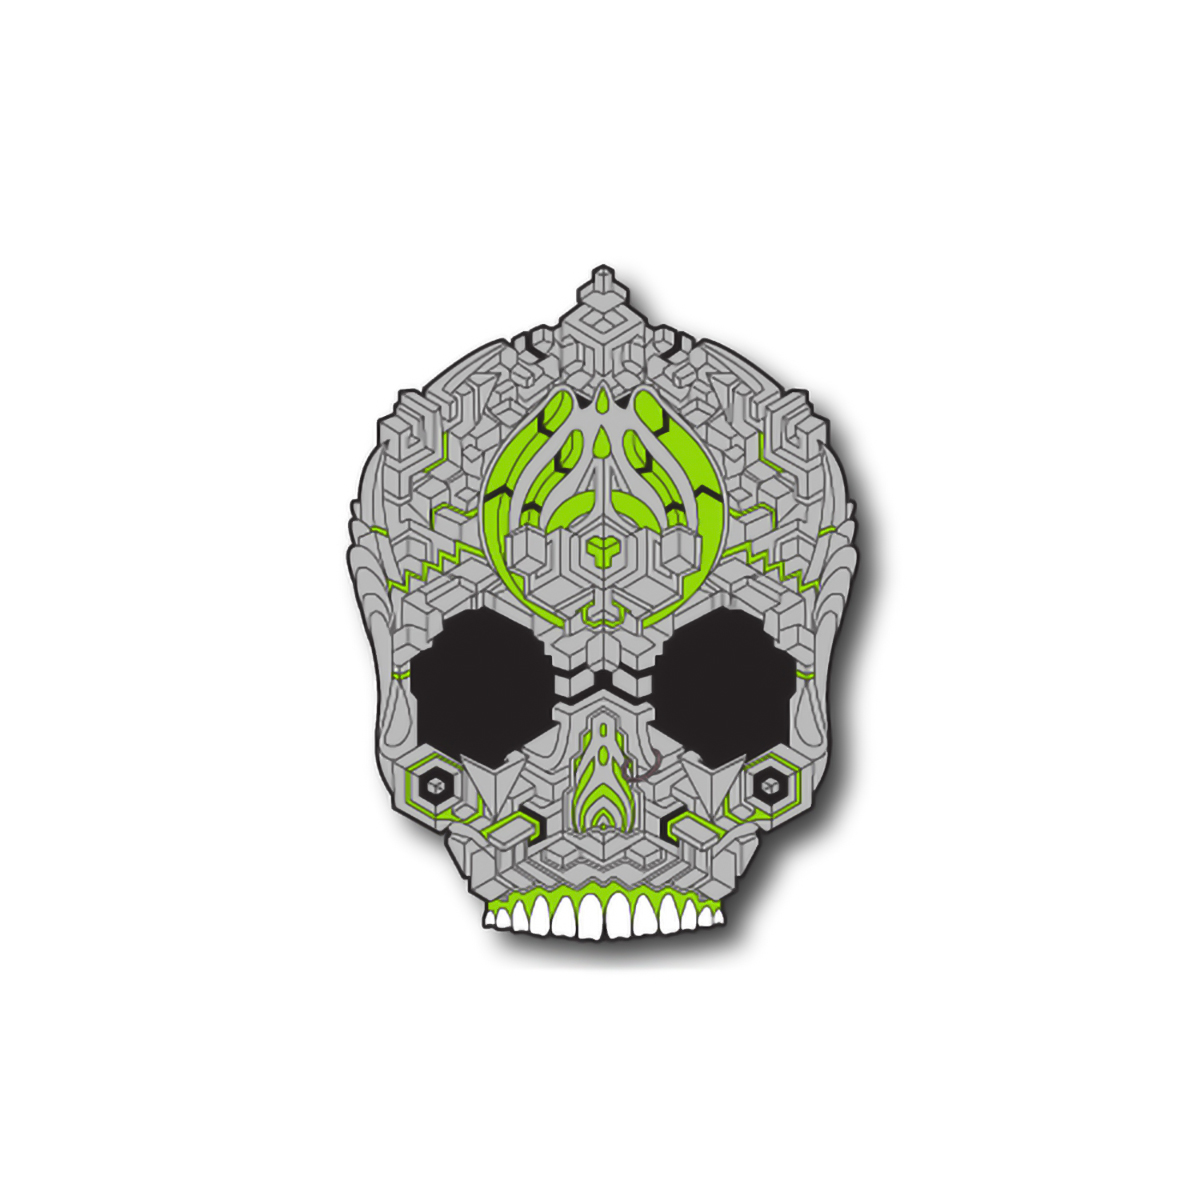 Freakstyle 2019 Event Pin #2